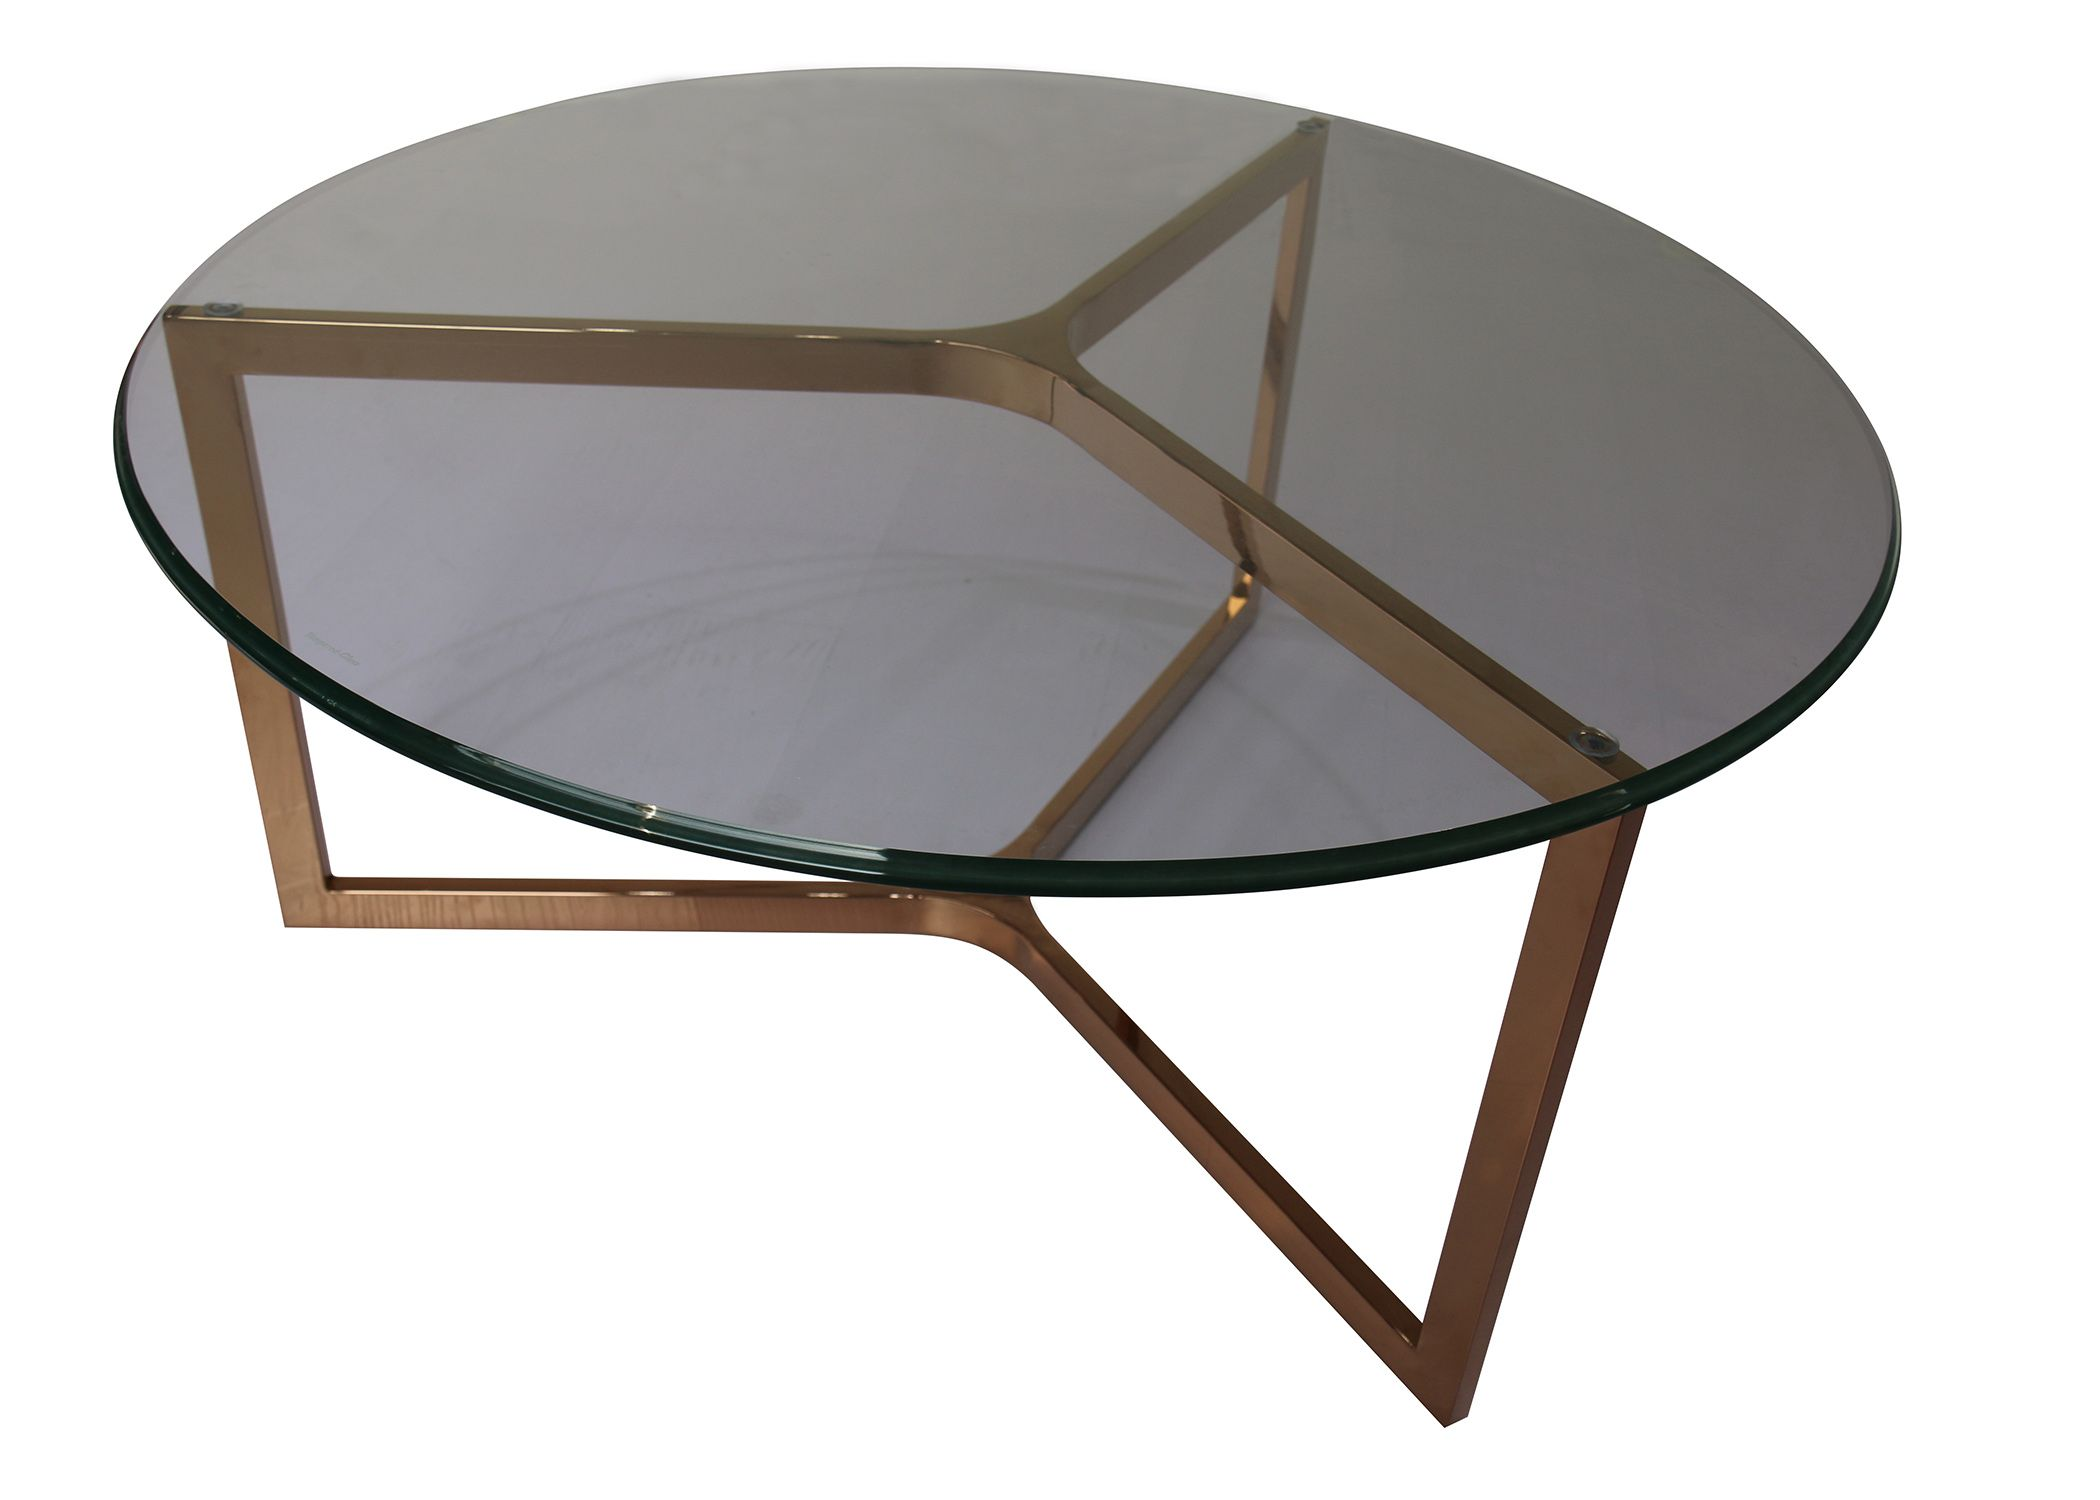 - Monza Round Coffee Table Glass Top In Rose Gold - NPD Round